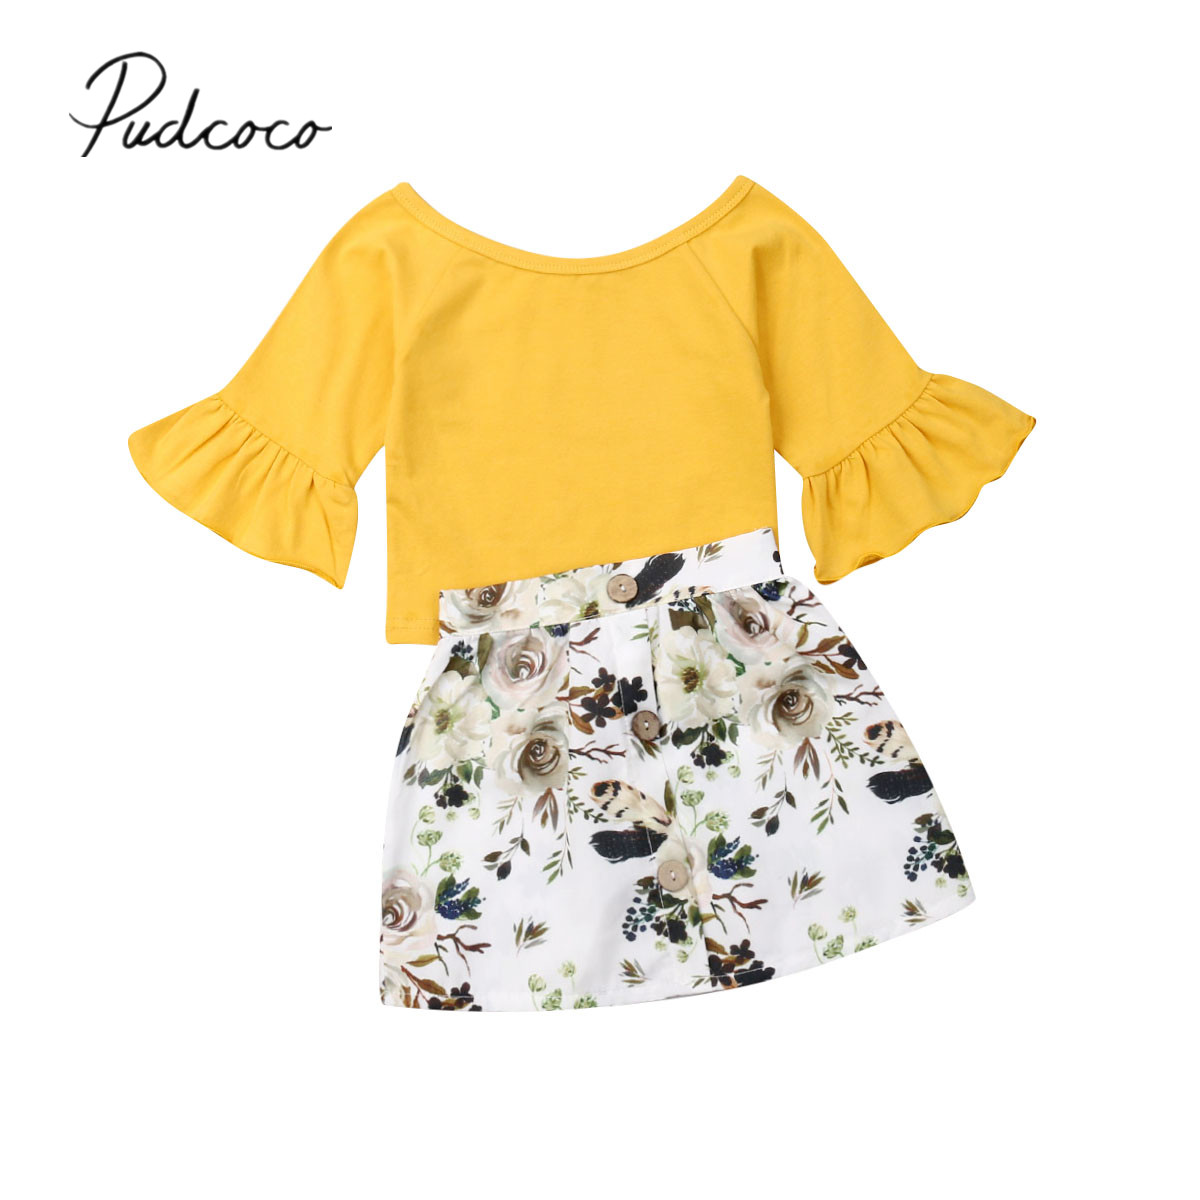 2019 Baby Summer Clothing Newborn Toddler Infant Baby Girl Clothes Flare Sleeve T-shirt Top Floral Mini Skirt Outfit Set 6M-4T